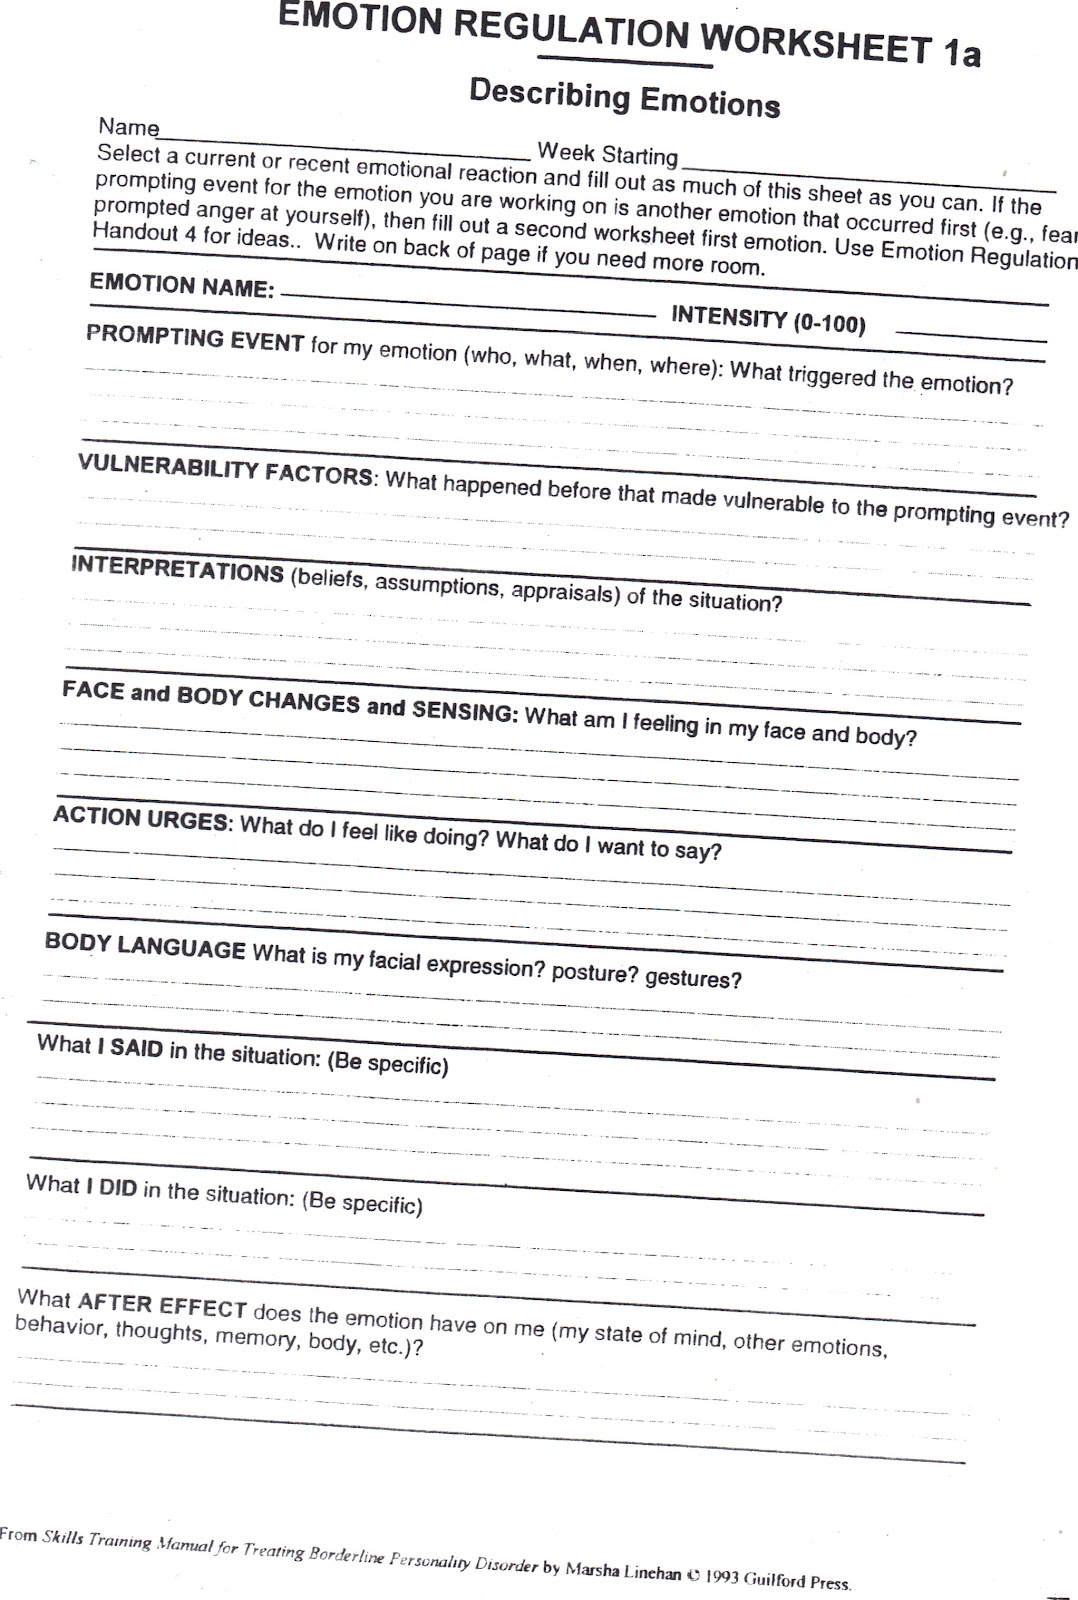 worksheet Emotions Worksheet emotional regulation worksheets abitlikethis emotion worksheet 1a